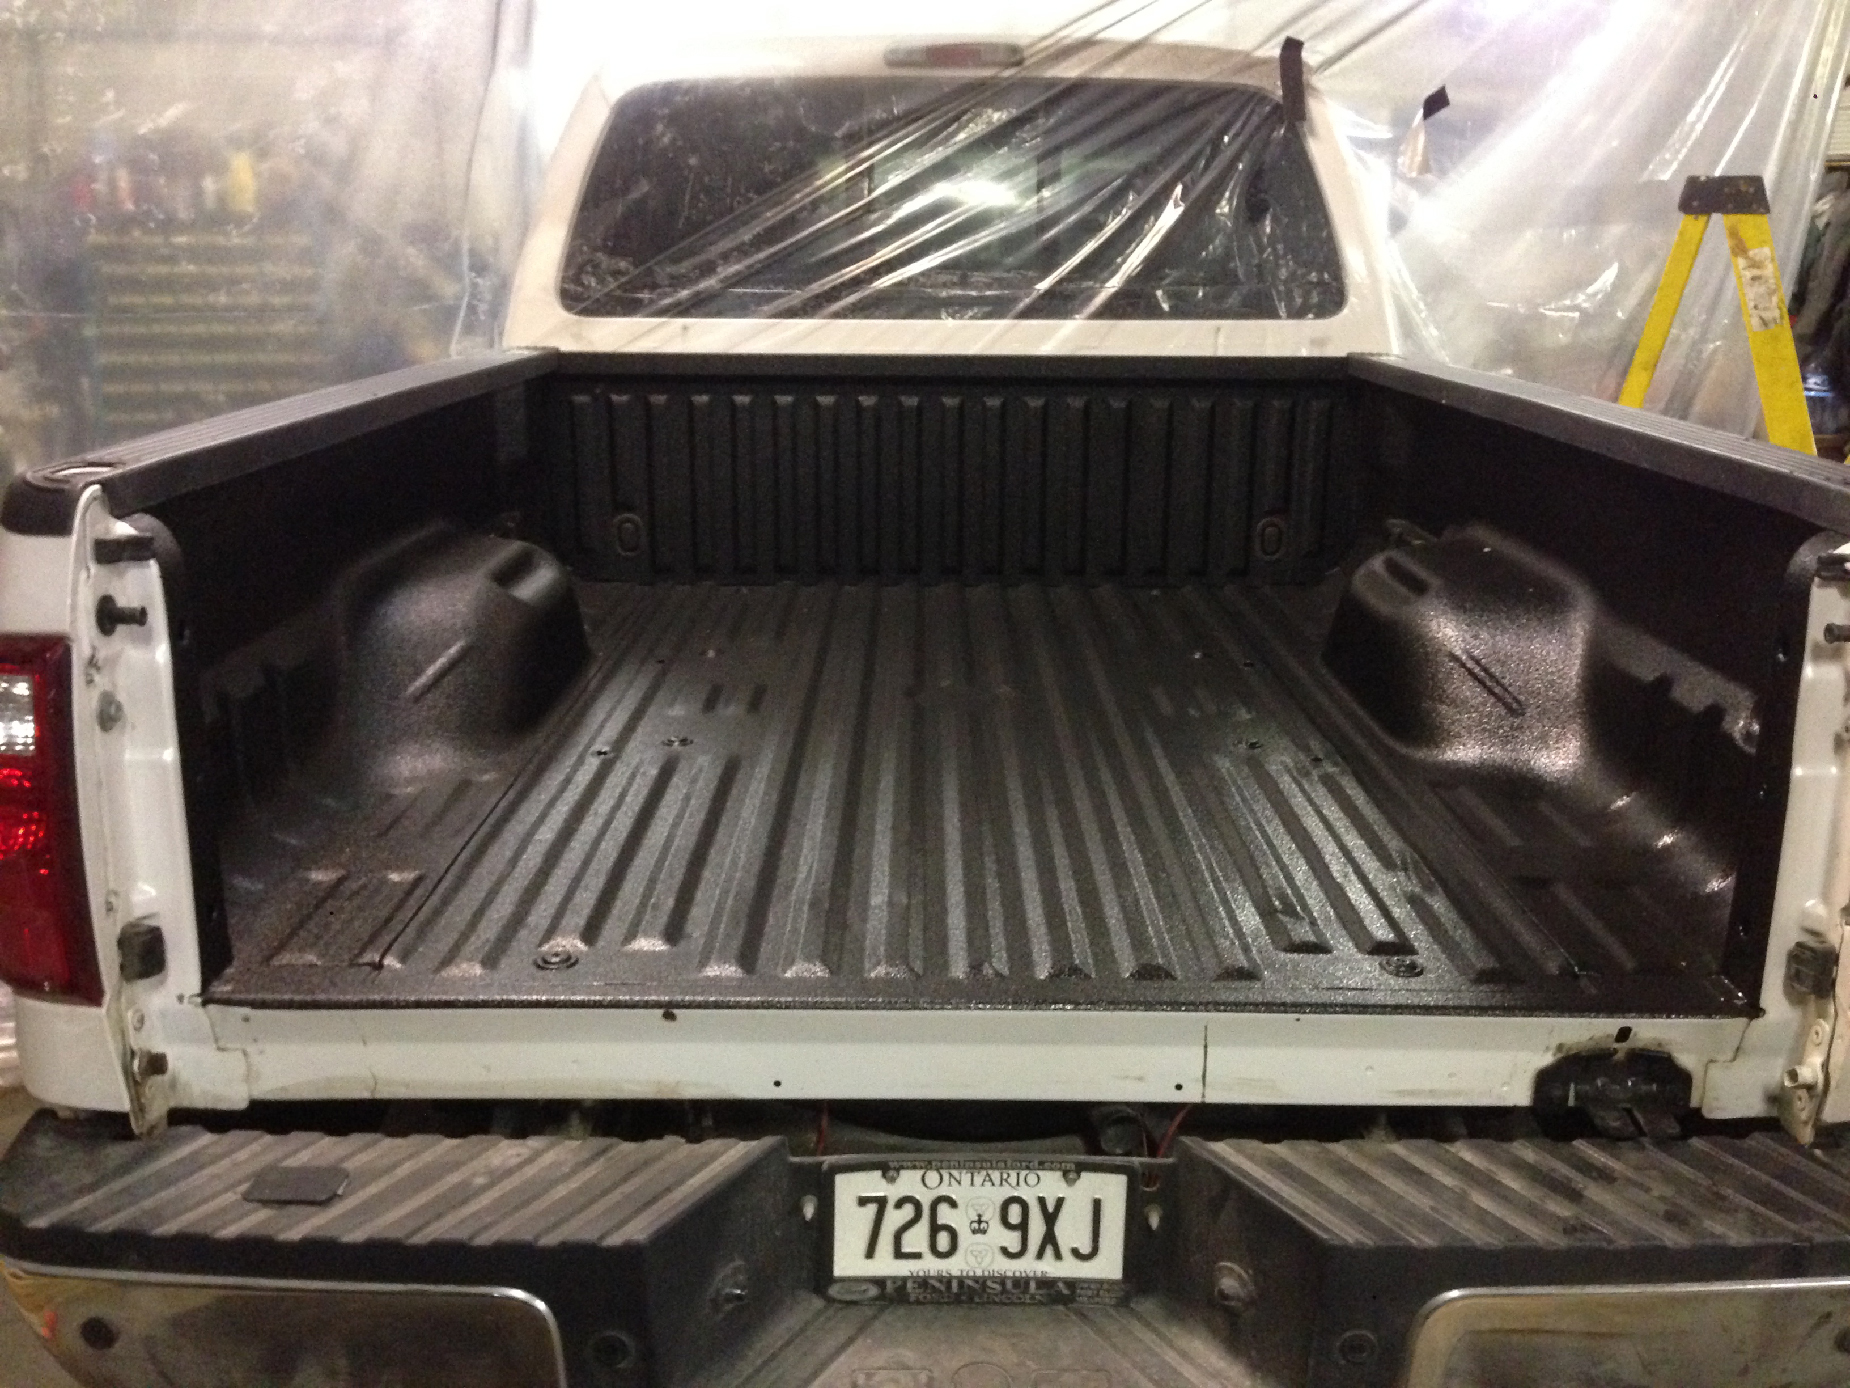 Truck bed lining